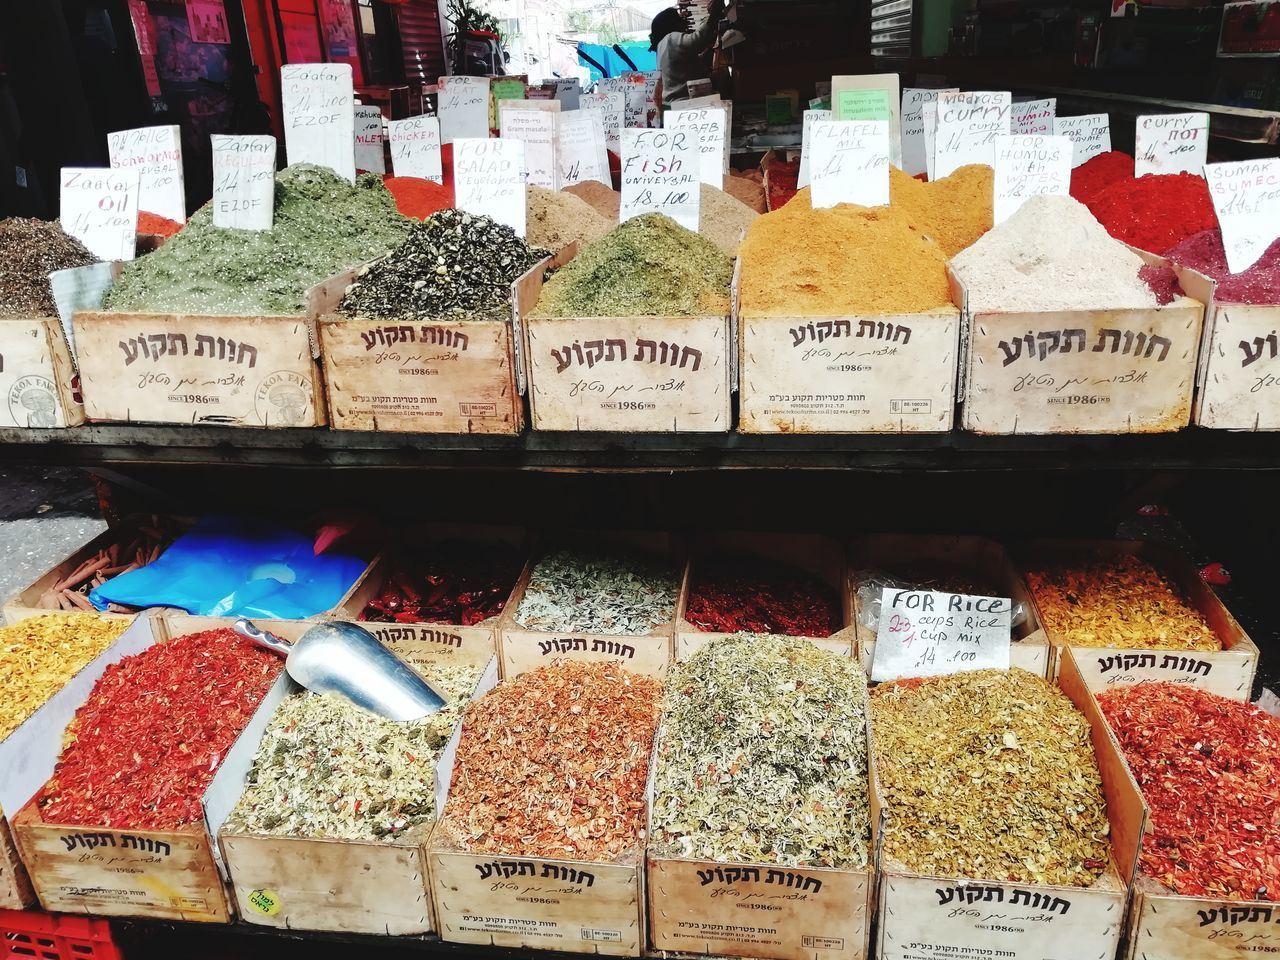 choice, variation, retail, for sale, food and drink, food, multi colored, market, arrangement, market stall, spice, indoors, text, freshness, no people, abundance, business, large group of objects, small business, store, order, retail display, sale, herb, variety